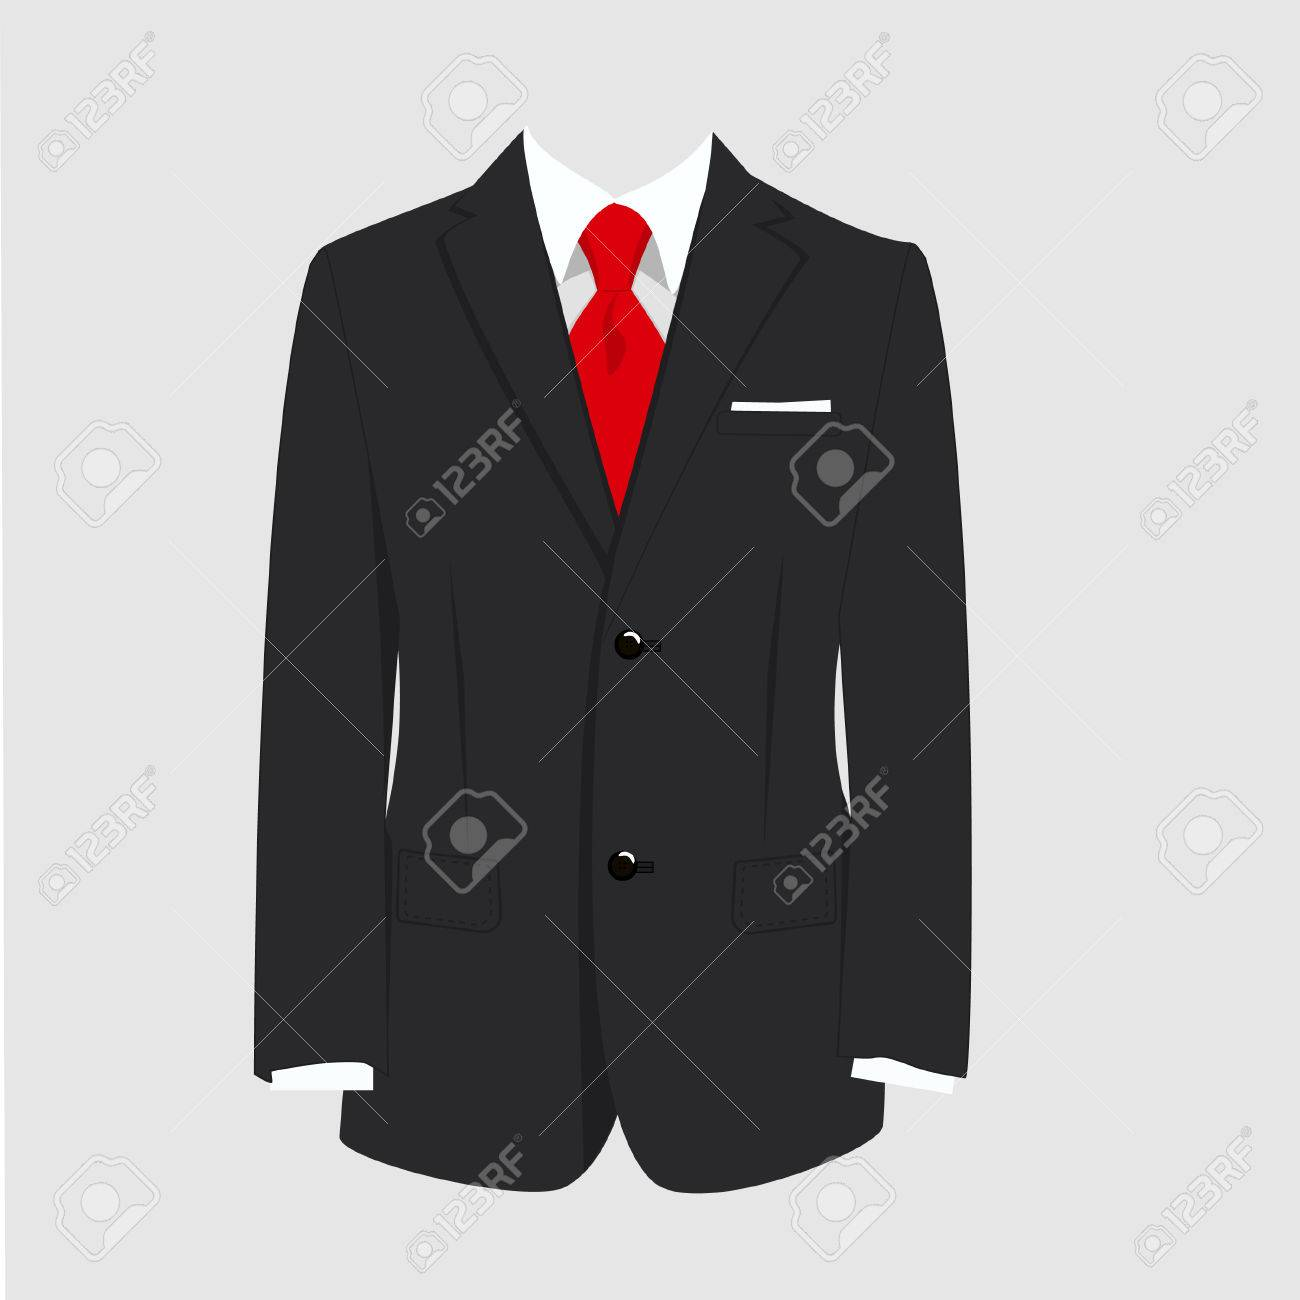 Vector illustration of black man suit with red tie and white shirt on grey background. Business suit, business, mens suit, man in suit - 45907866